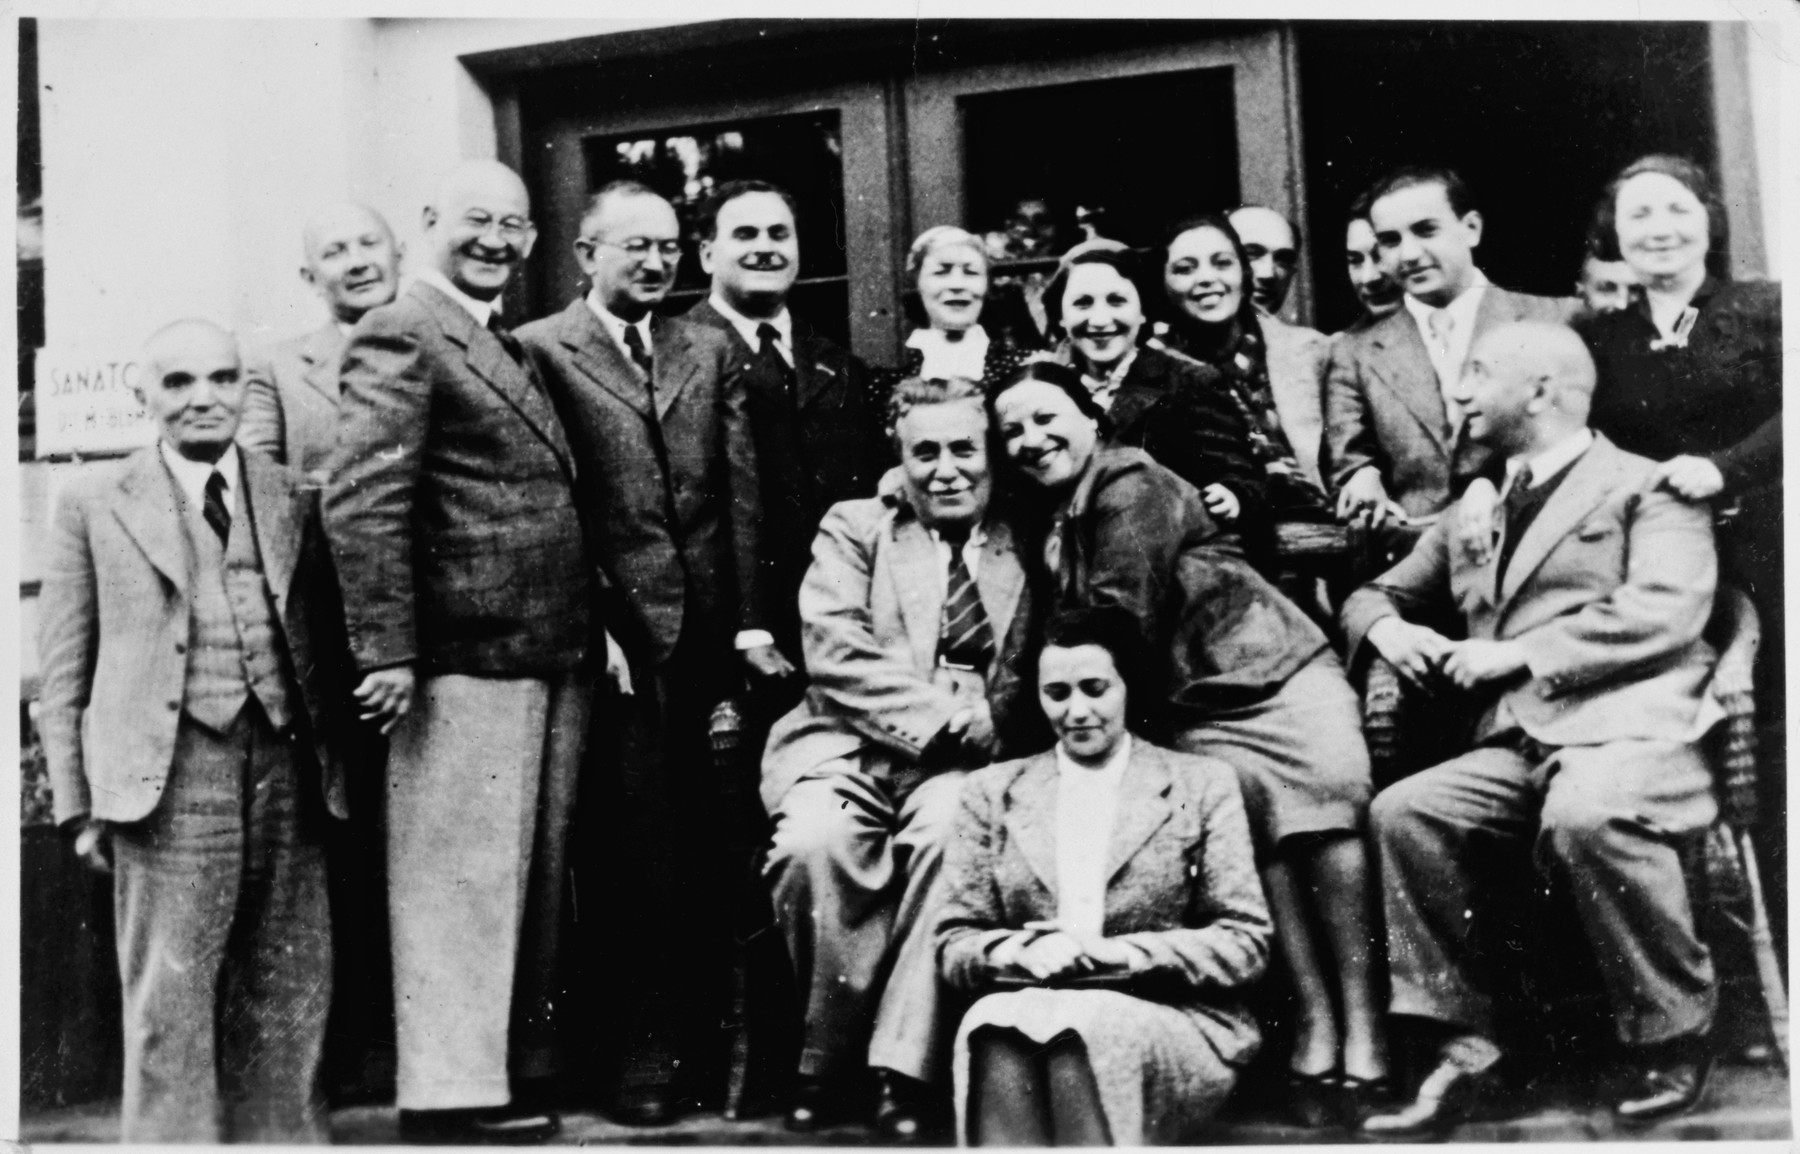 Group portrait at Sanatorium in Druskieniki.  Pictured are Estra Blumstien and friends at the Blumstein's family's hotel/sanatorium/spa.